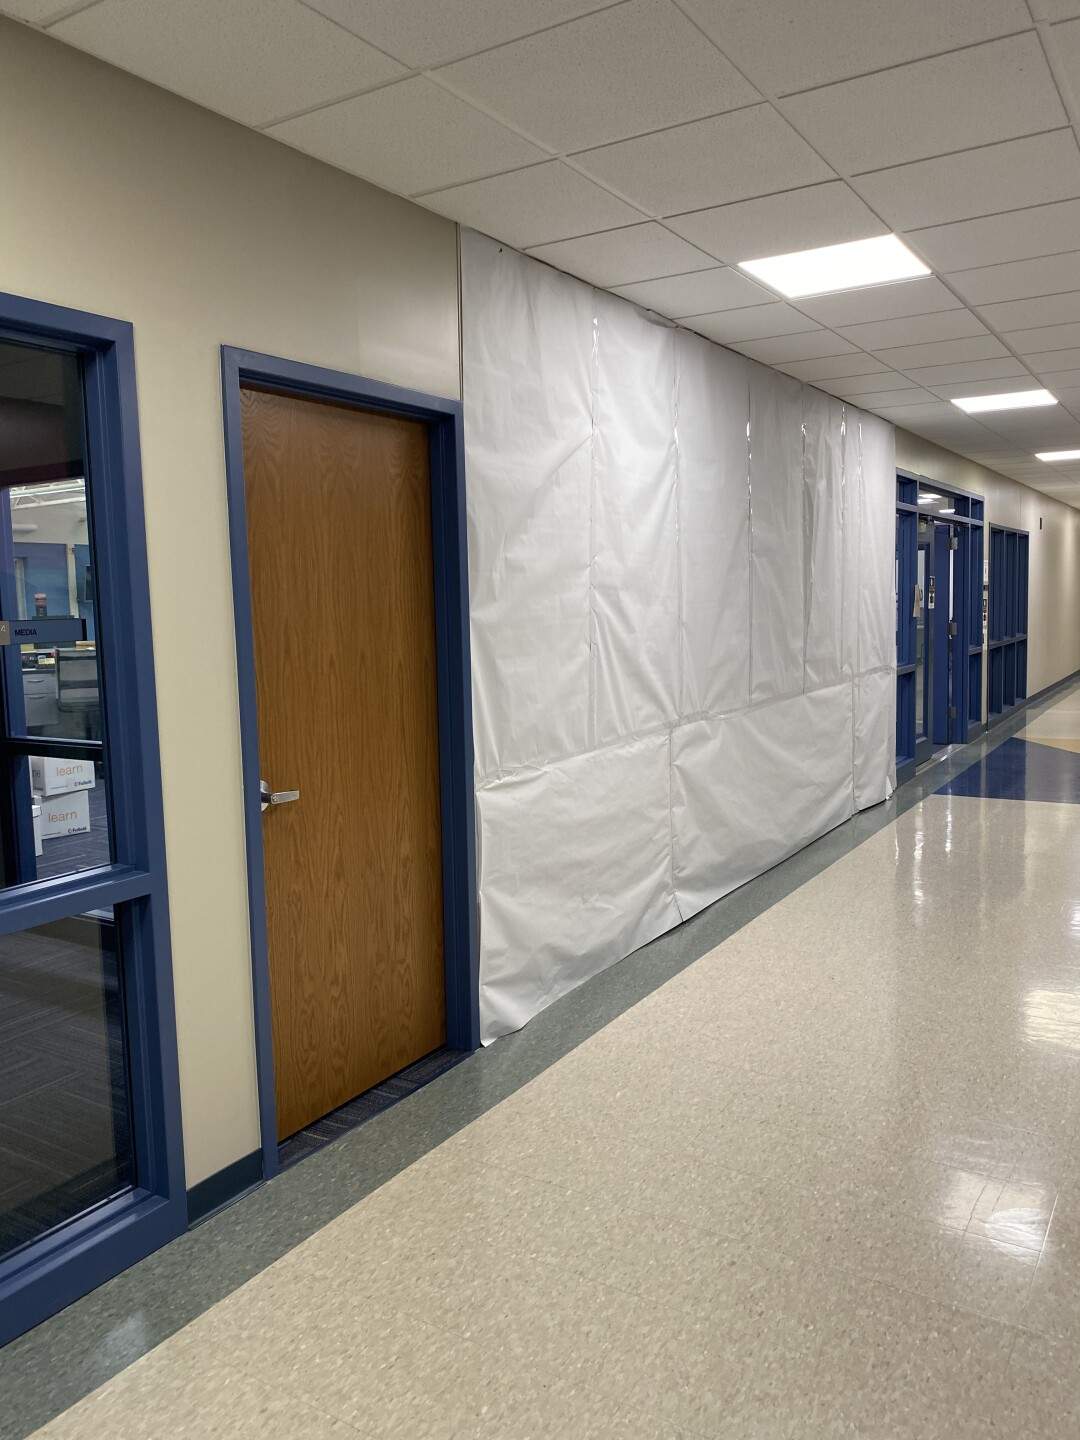 mural covered at Webster Middle School